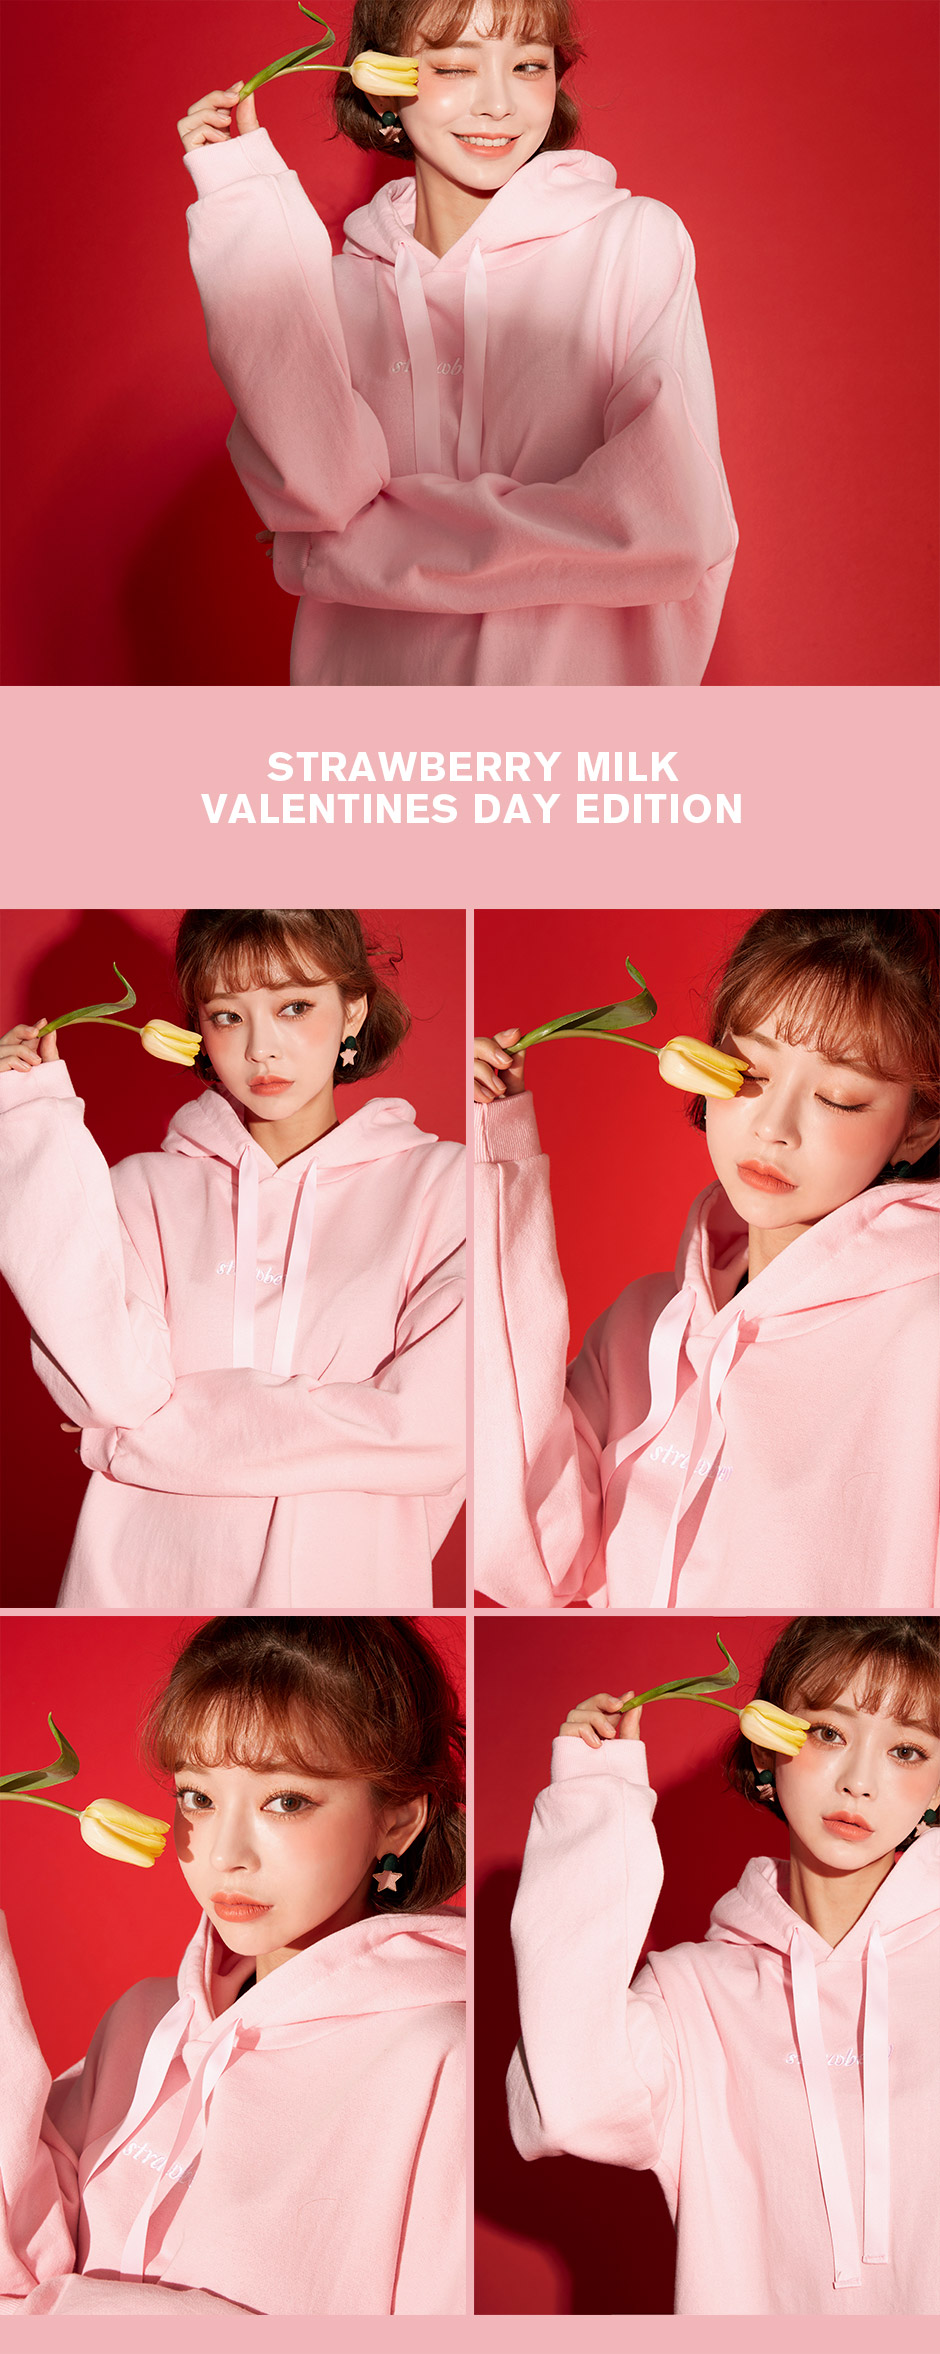 //cdn.nhanh.vn/cdn/store/29770/psCT/20180927/9208016/CHUU_Strawberry_Milk_Strawberry_Event_Dress_(20).jpg